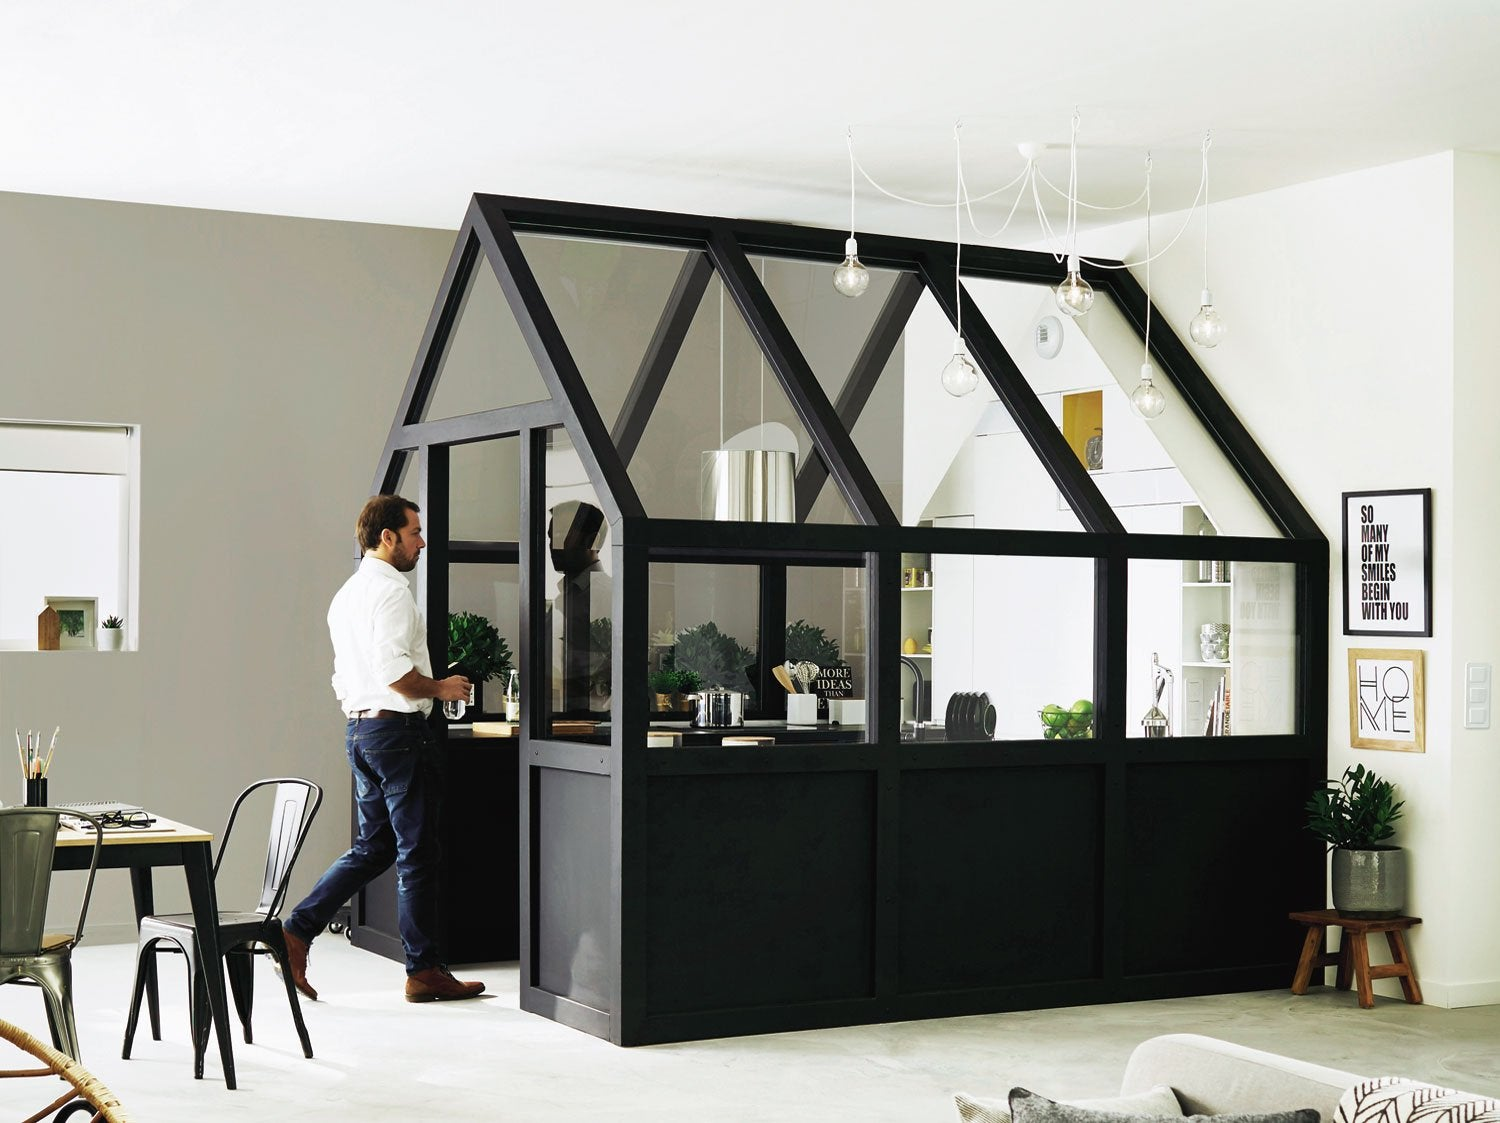 comment cr er une cuisine dans le s jour leroy merlin. Black Bedroom Furniture Sets. Home Design Ideas